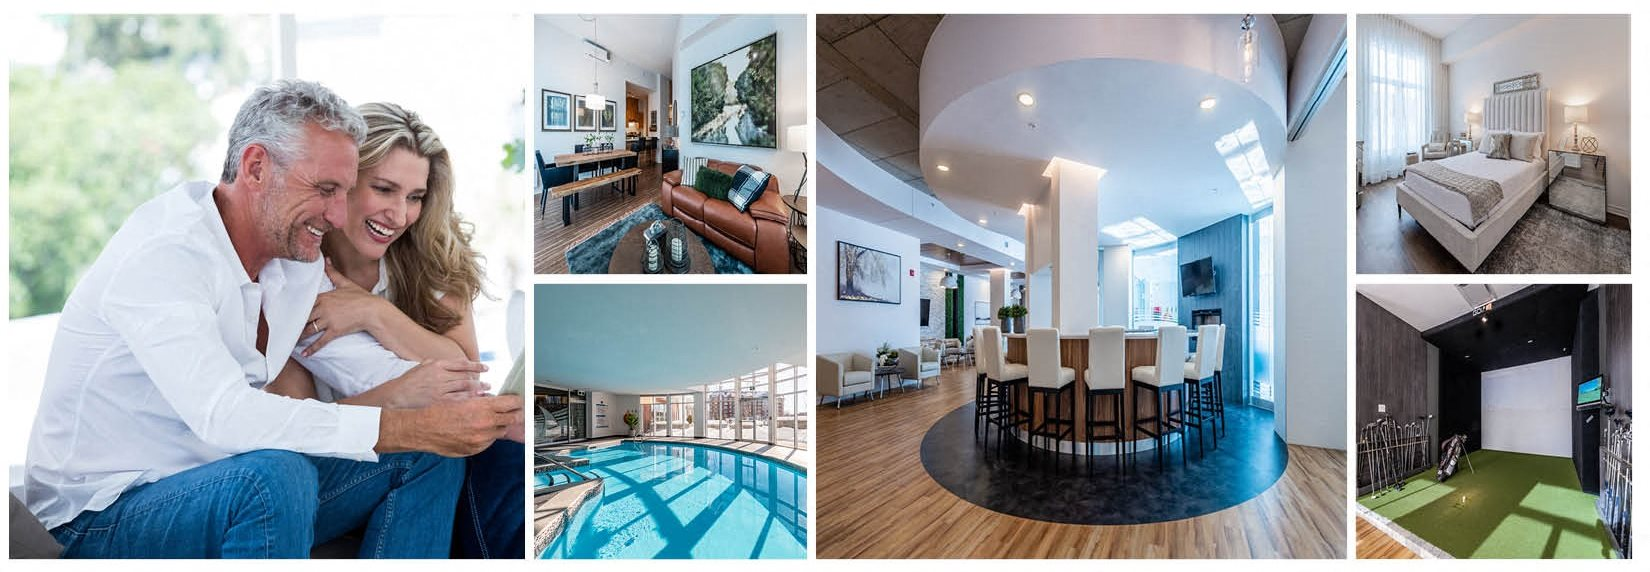 Collage of apartments and amenities at La Voile Boisbriand apartments